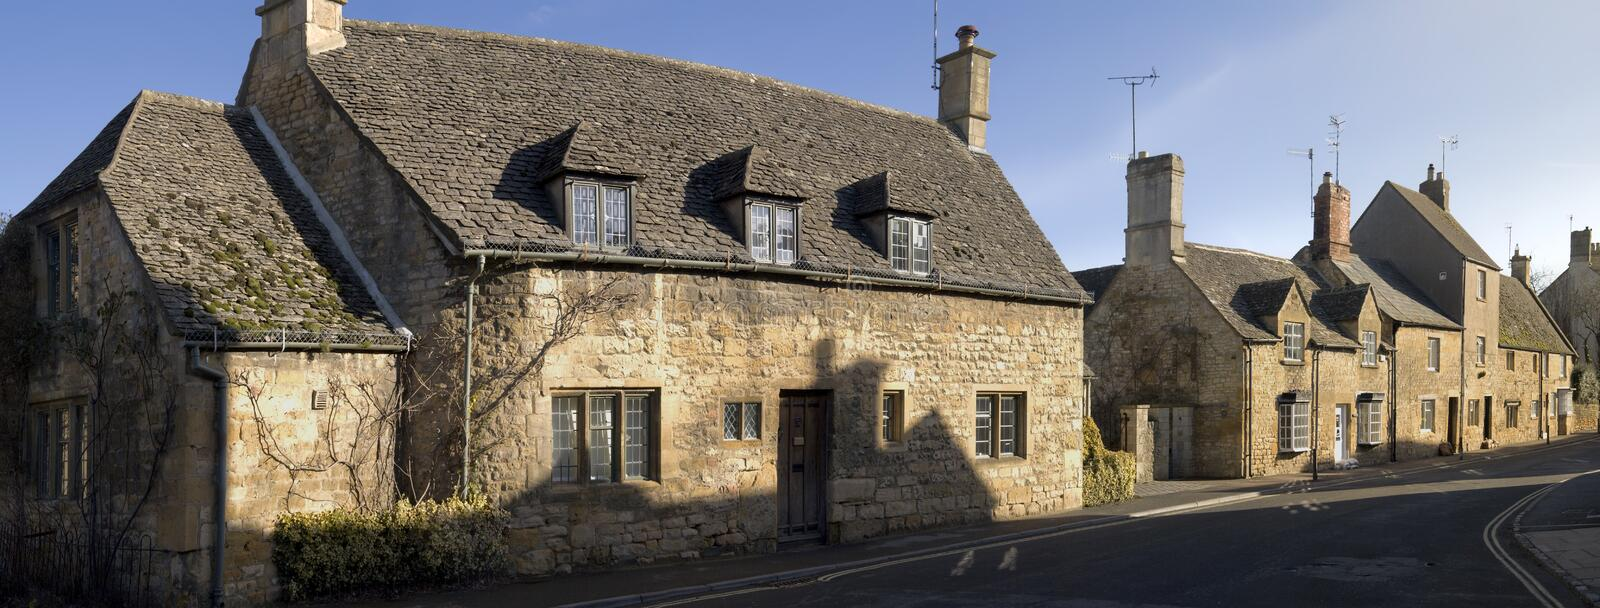 Cotswolds immagine stock